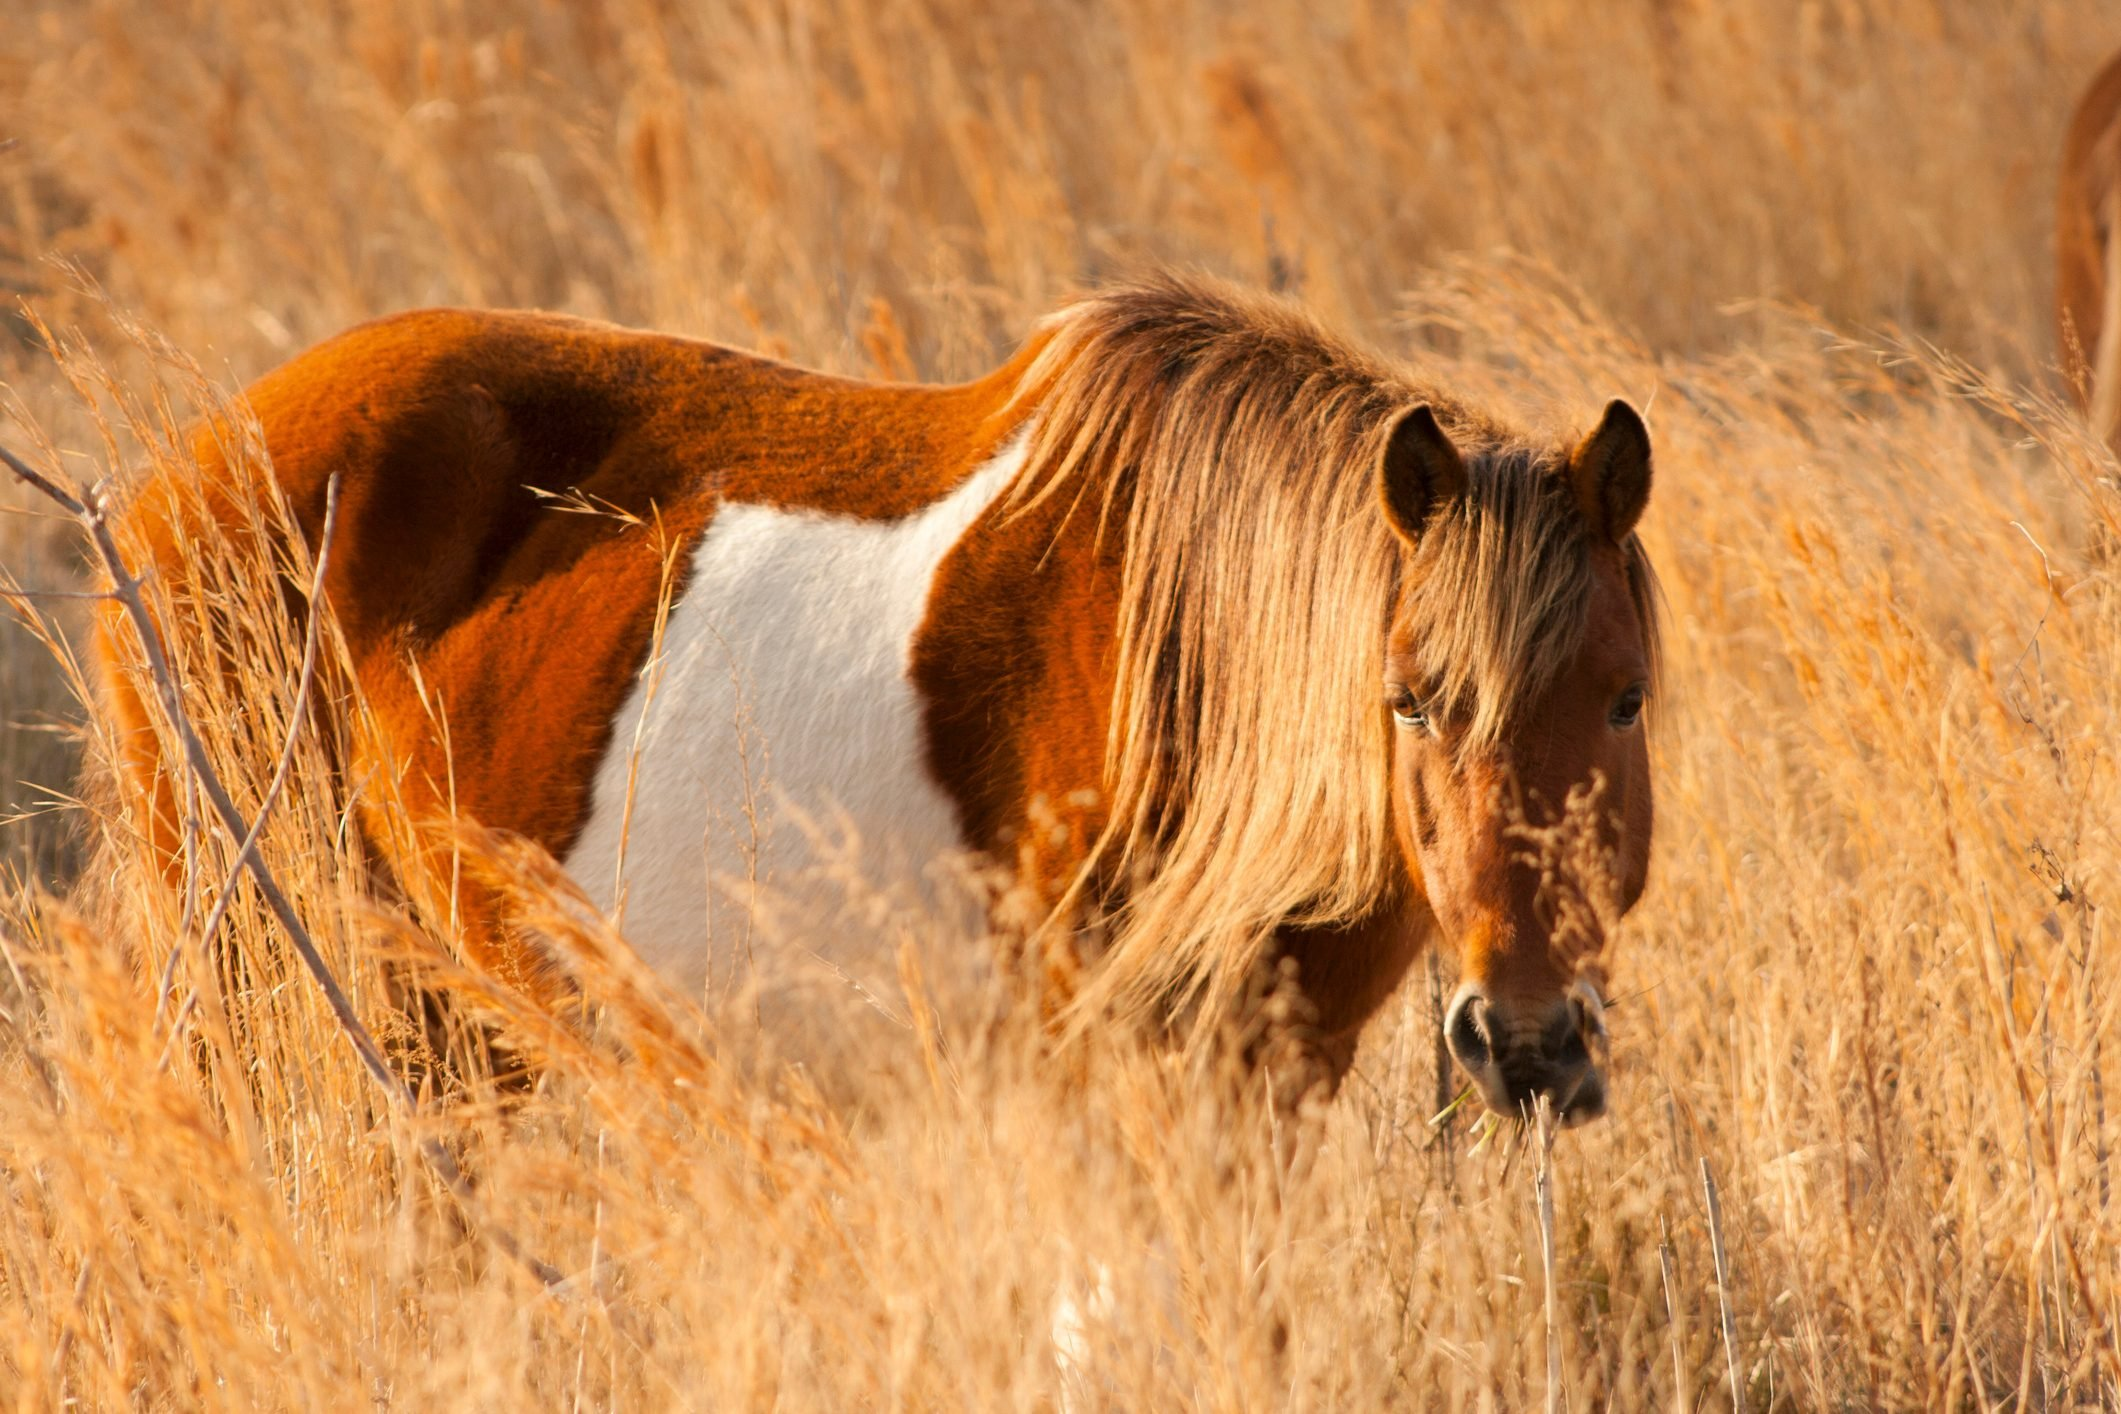 Wild pony in cordgrass at Assateague in Maryland.